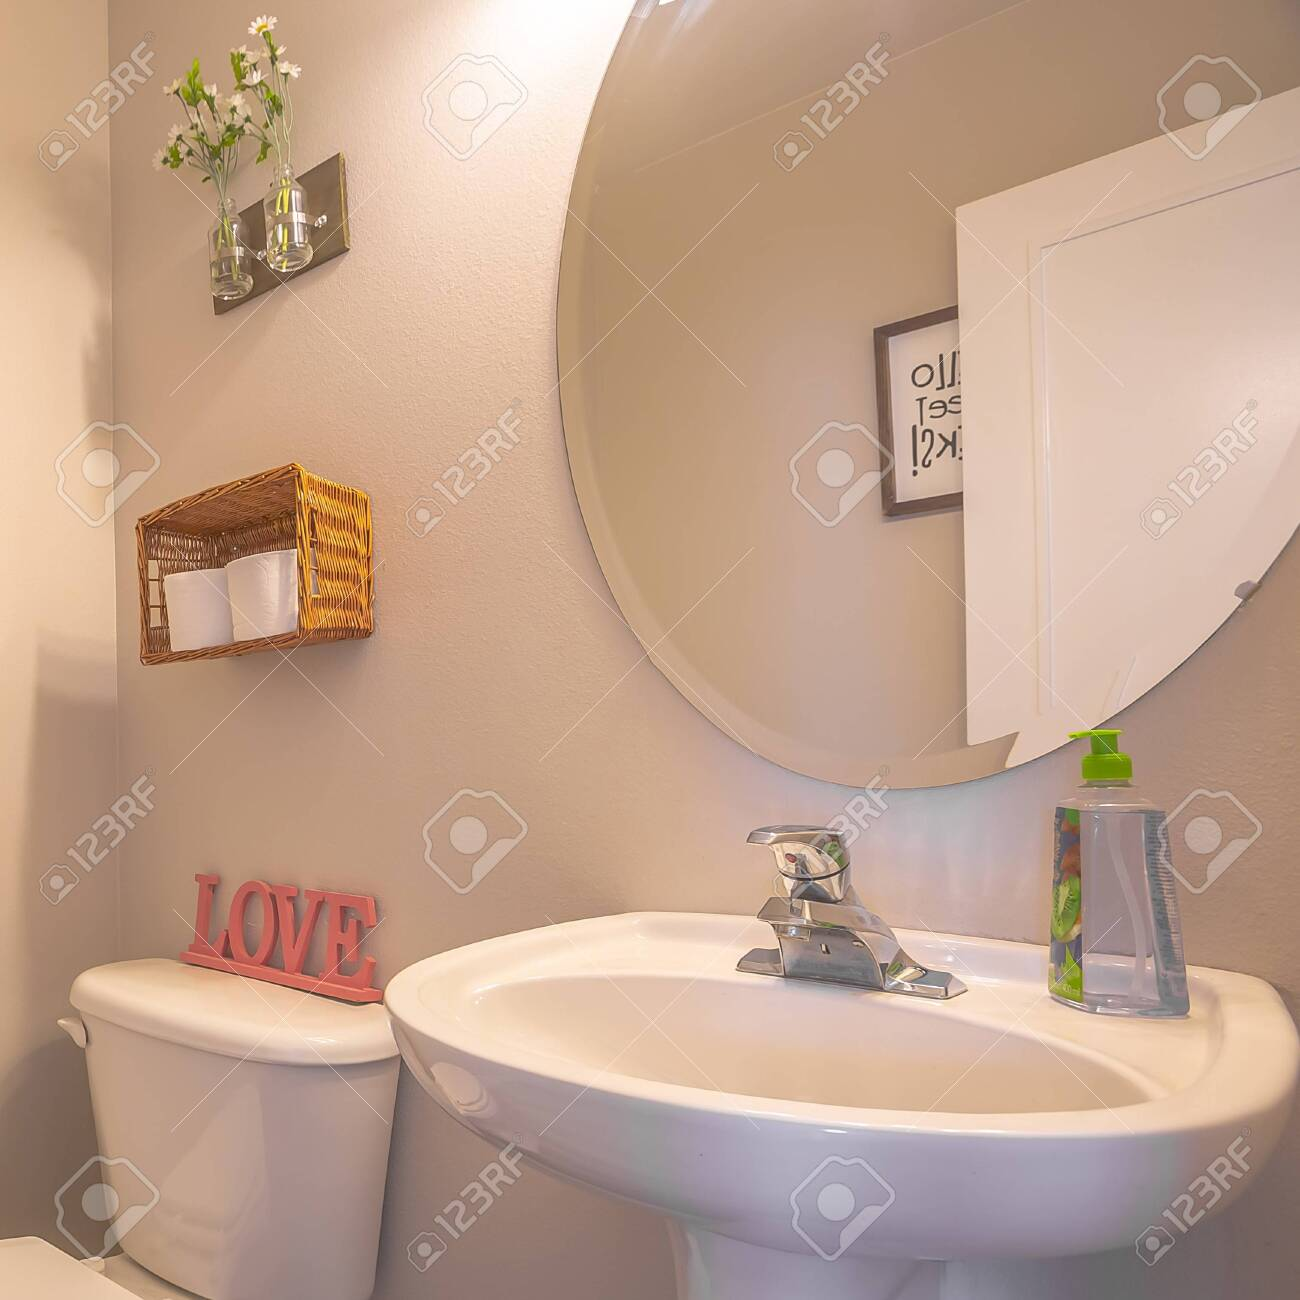 https www 123rf com photo 137183285 square bathroom interior with toliet adjacent to stand alone sink and round mirror clean bathroom of html